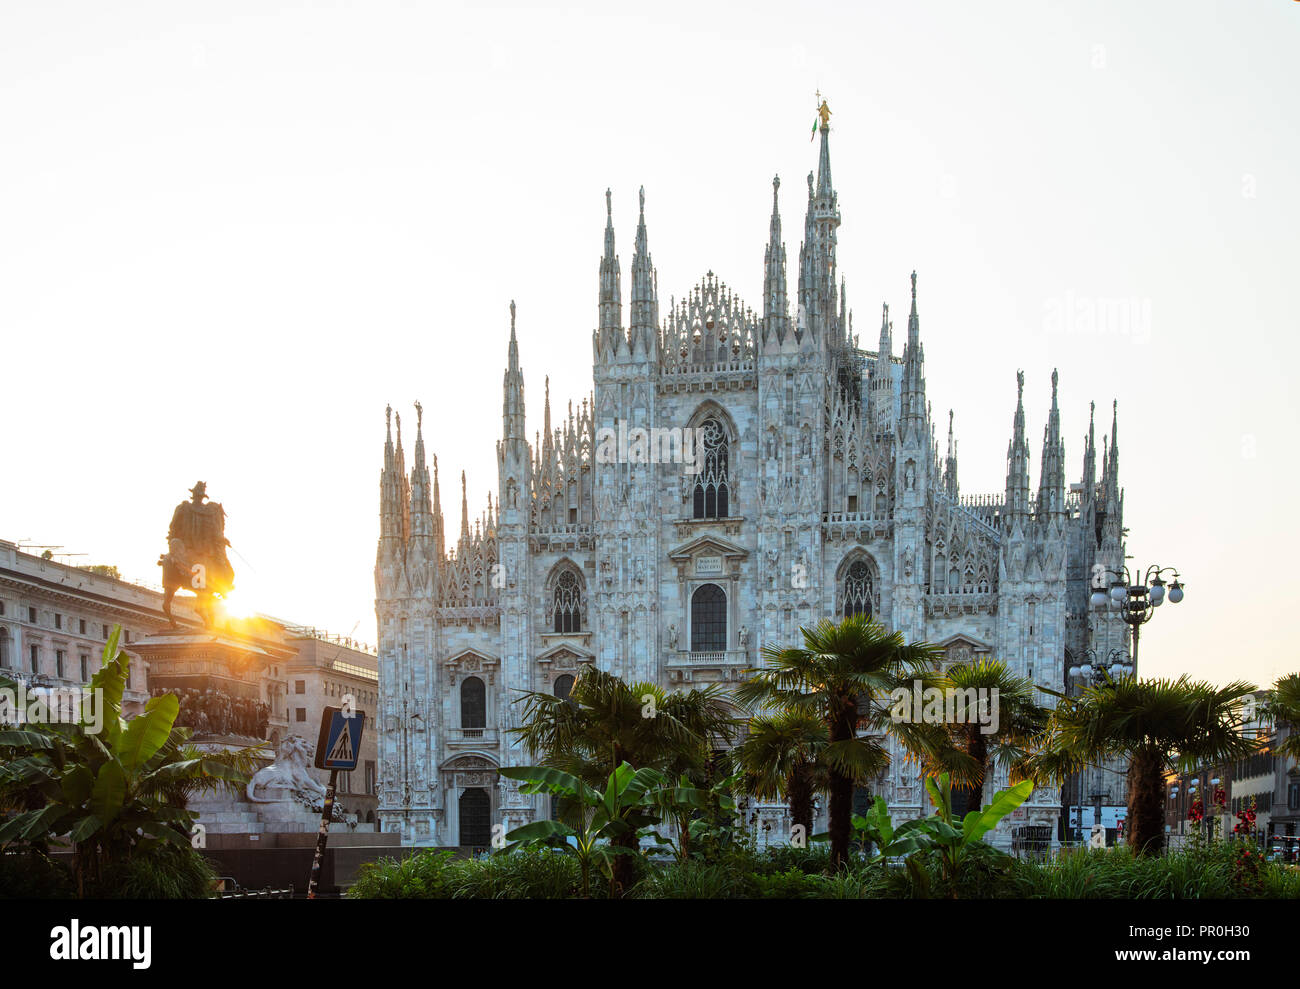 Duomo (Milan Cathedral) and statue of Vittorio Emanuele II, Milan, Lombardy, Italy, Europe - Stock Image